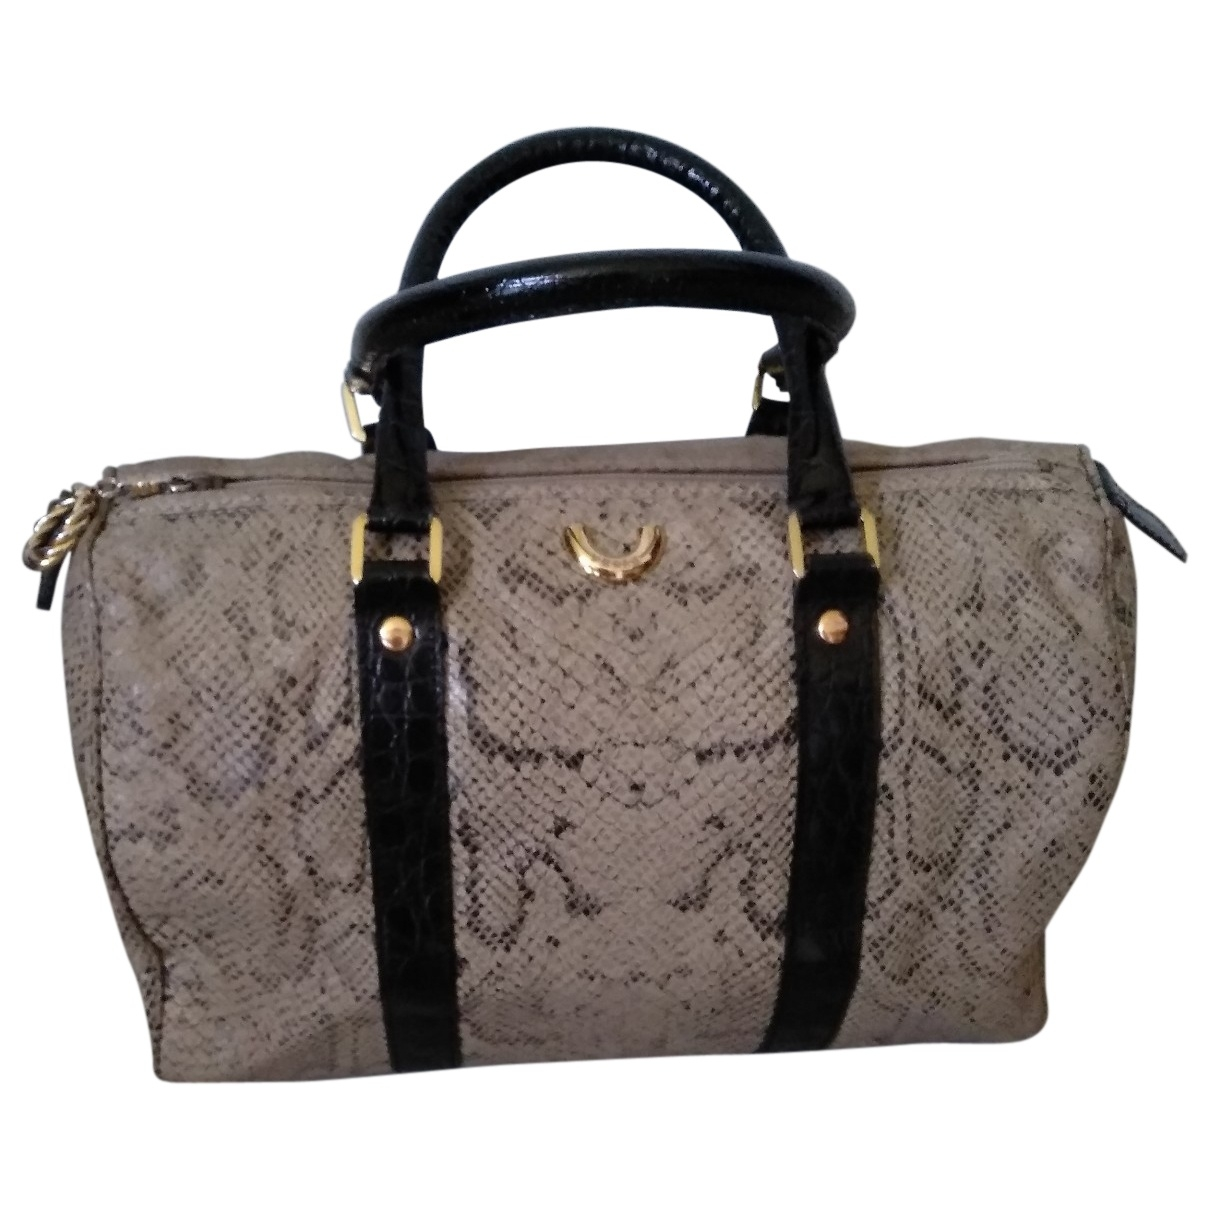 Gianfranco Ferré \N Beige Leather handbag for Women \N